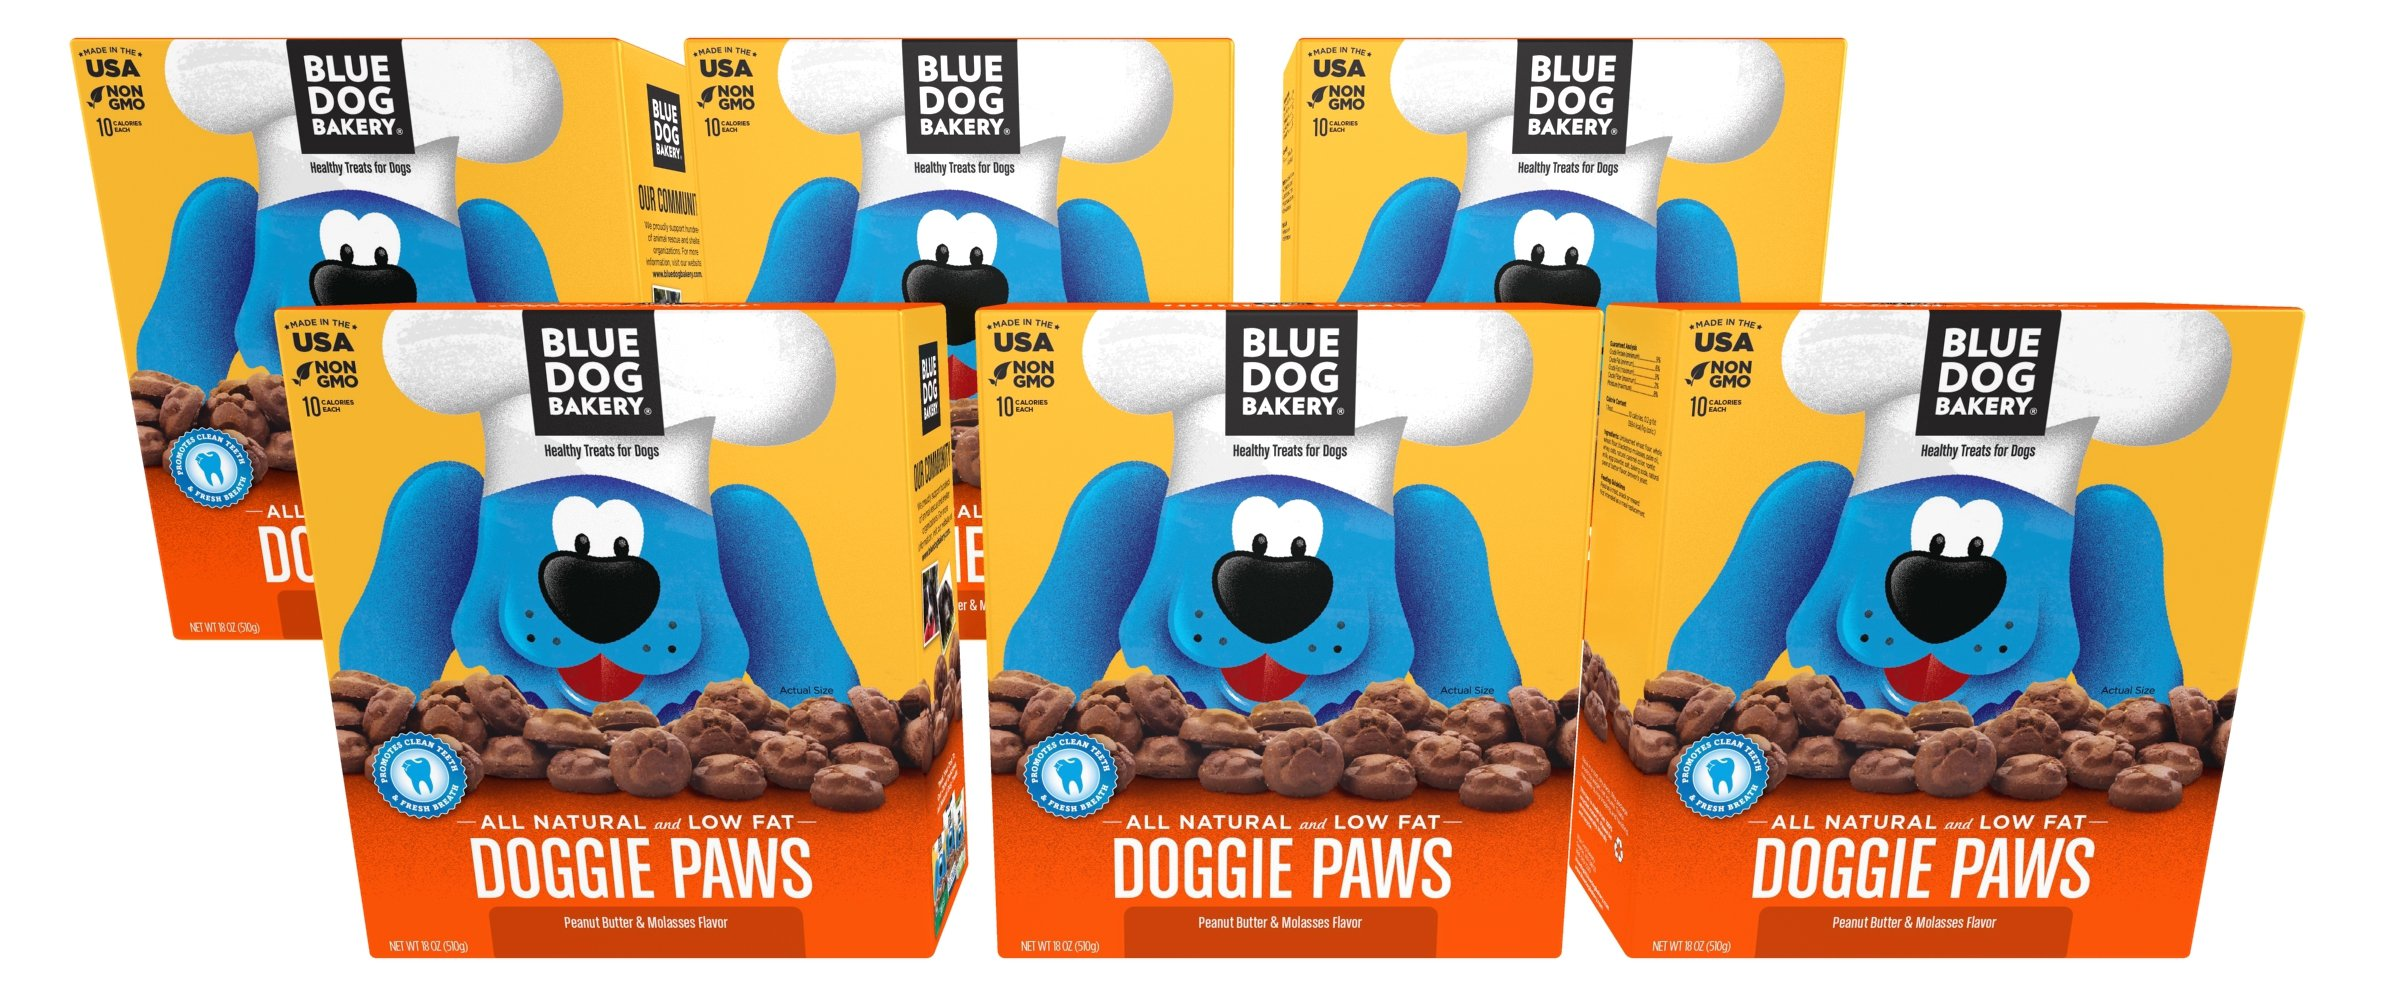 Blue Dog Bakery | Dog Treats | All-Natural | Peanut Butter & Molasses